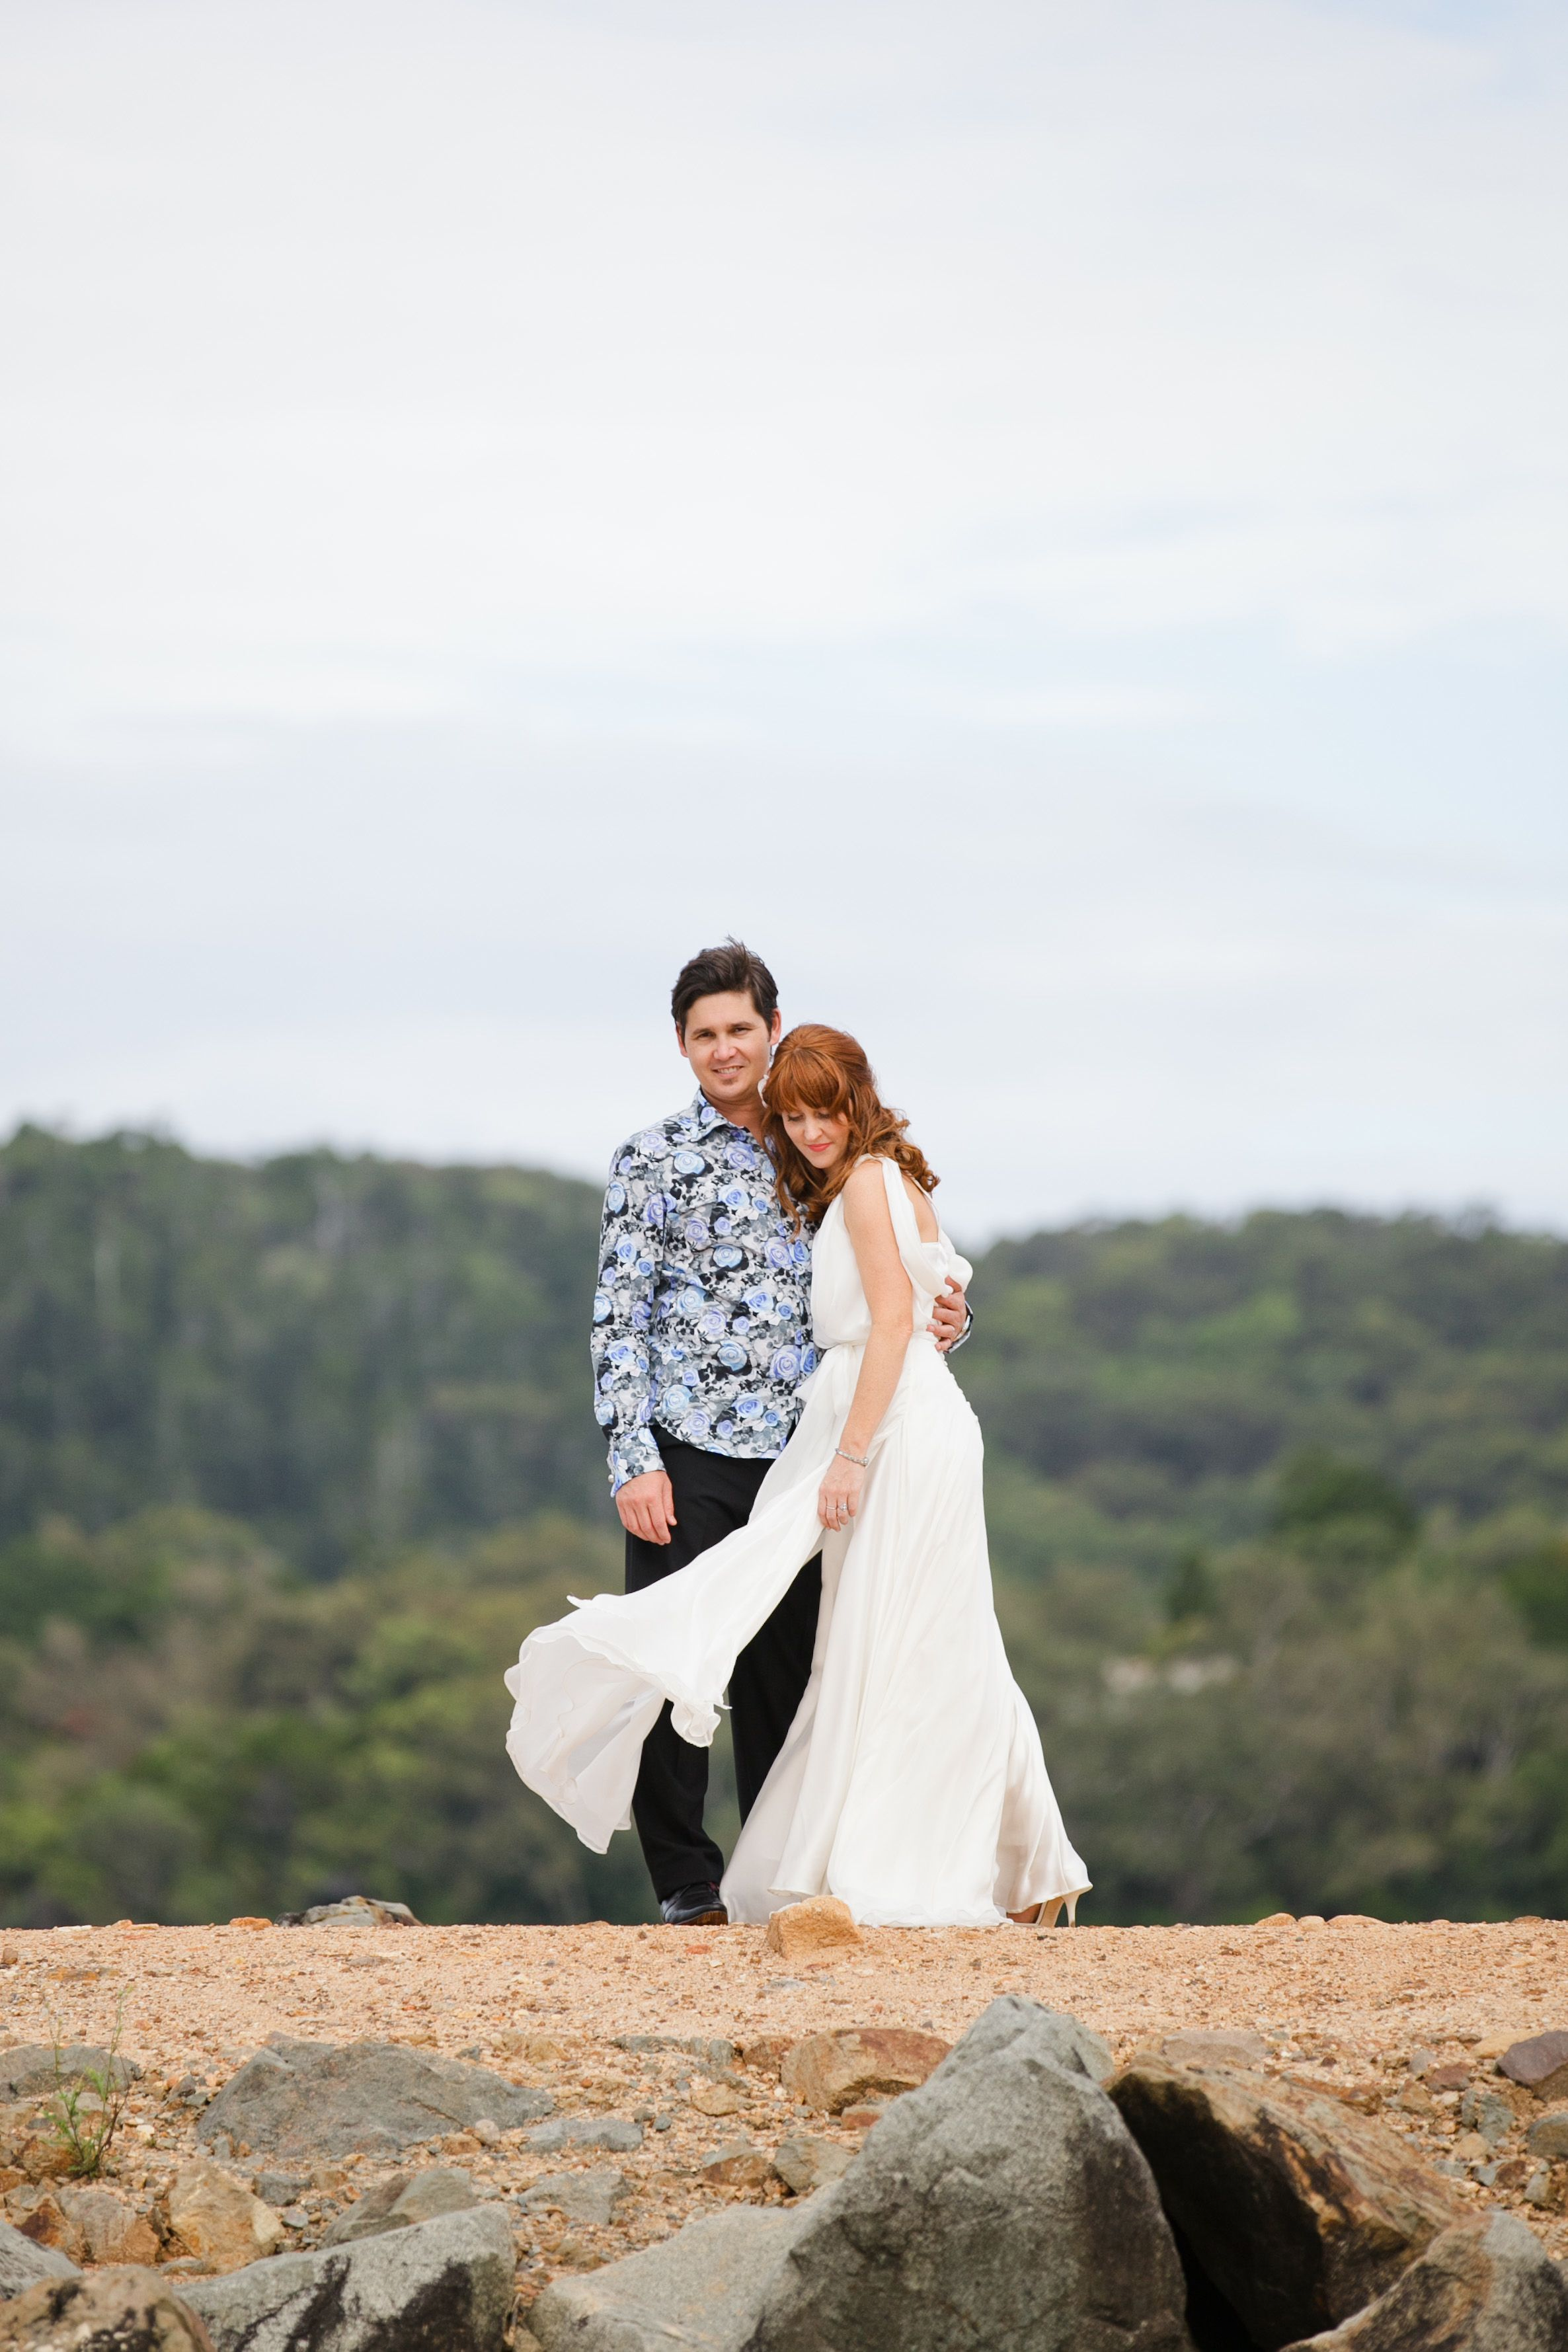 Last pin of my wedding...  Try a floaty dress instead of a veil for movement in the photos. Get the guys to rock out in floral shirts.  Dress code? Maybe try floral for groom, stripes for bride. Sweet.....